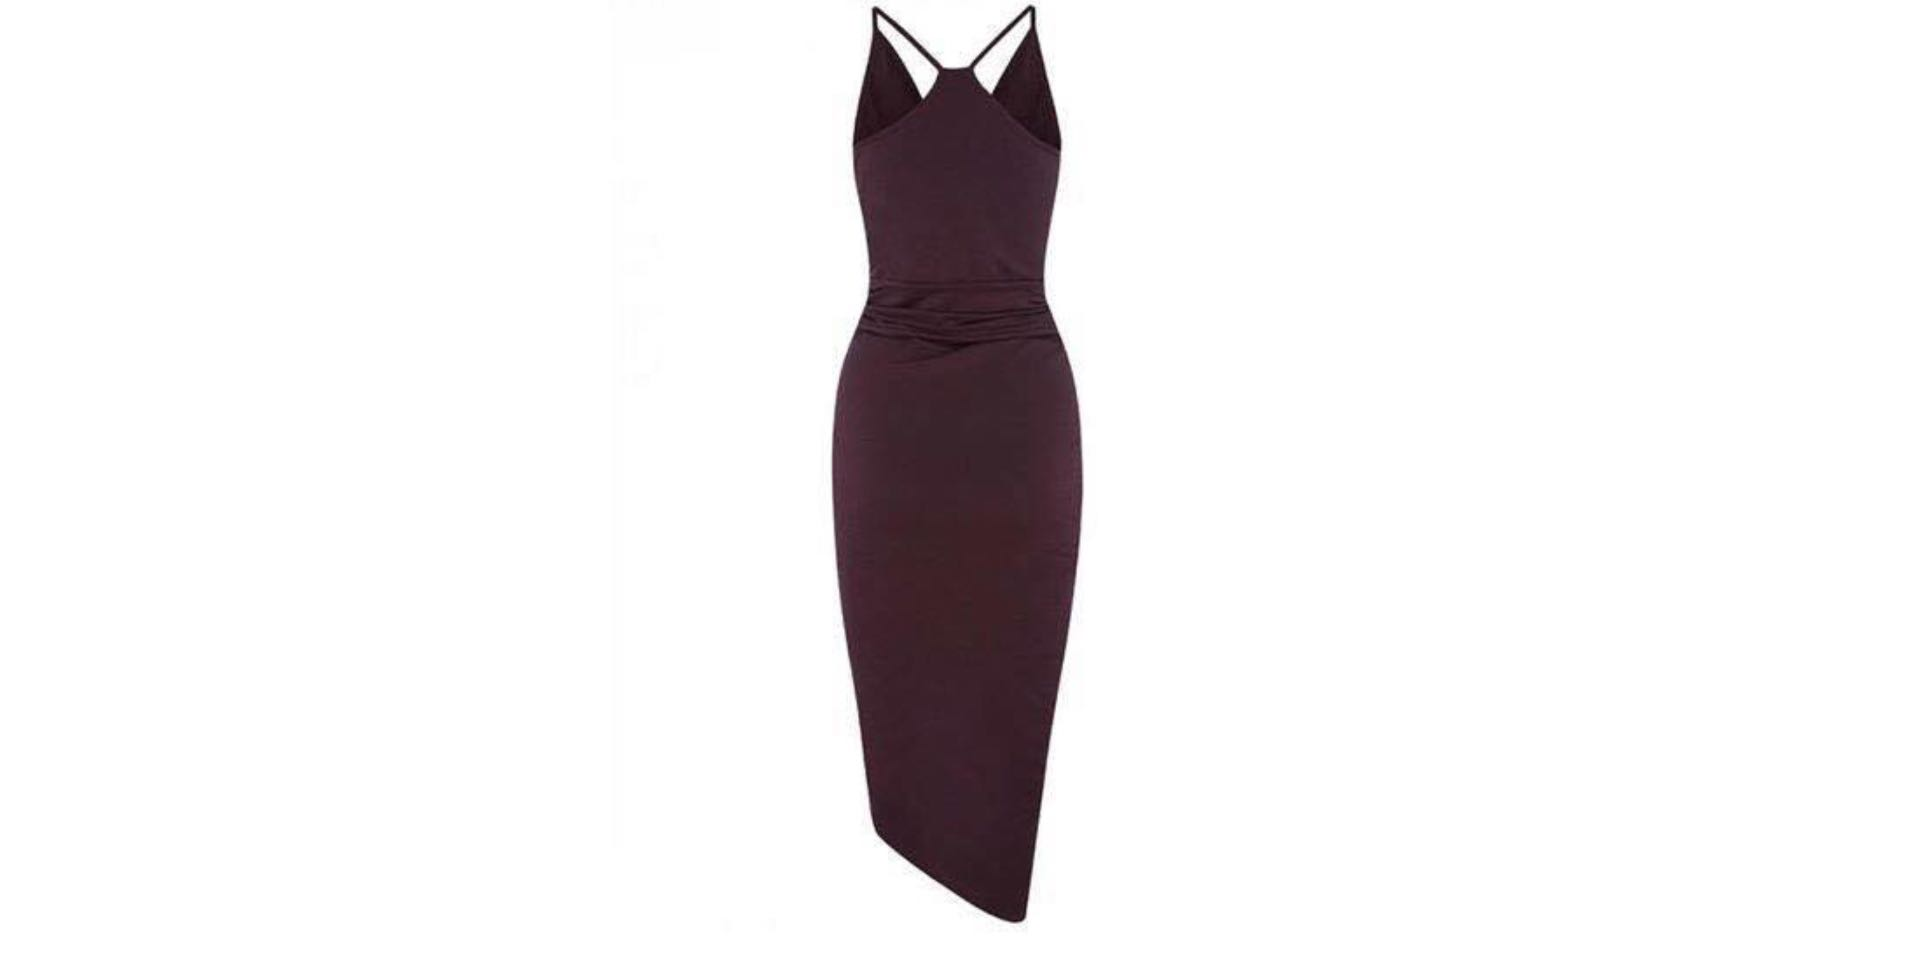 Gorgeous Sheike Luxe Maroon Dress - Size 6